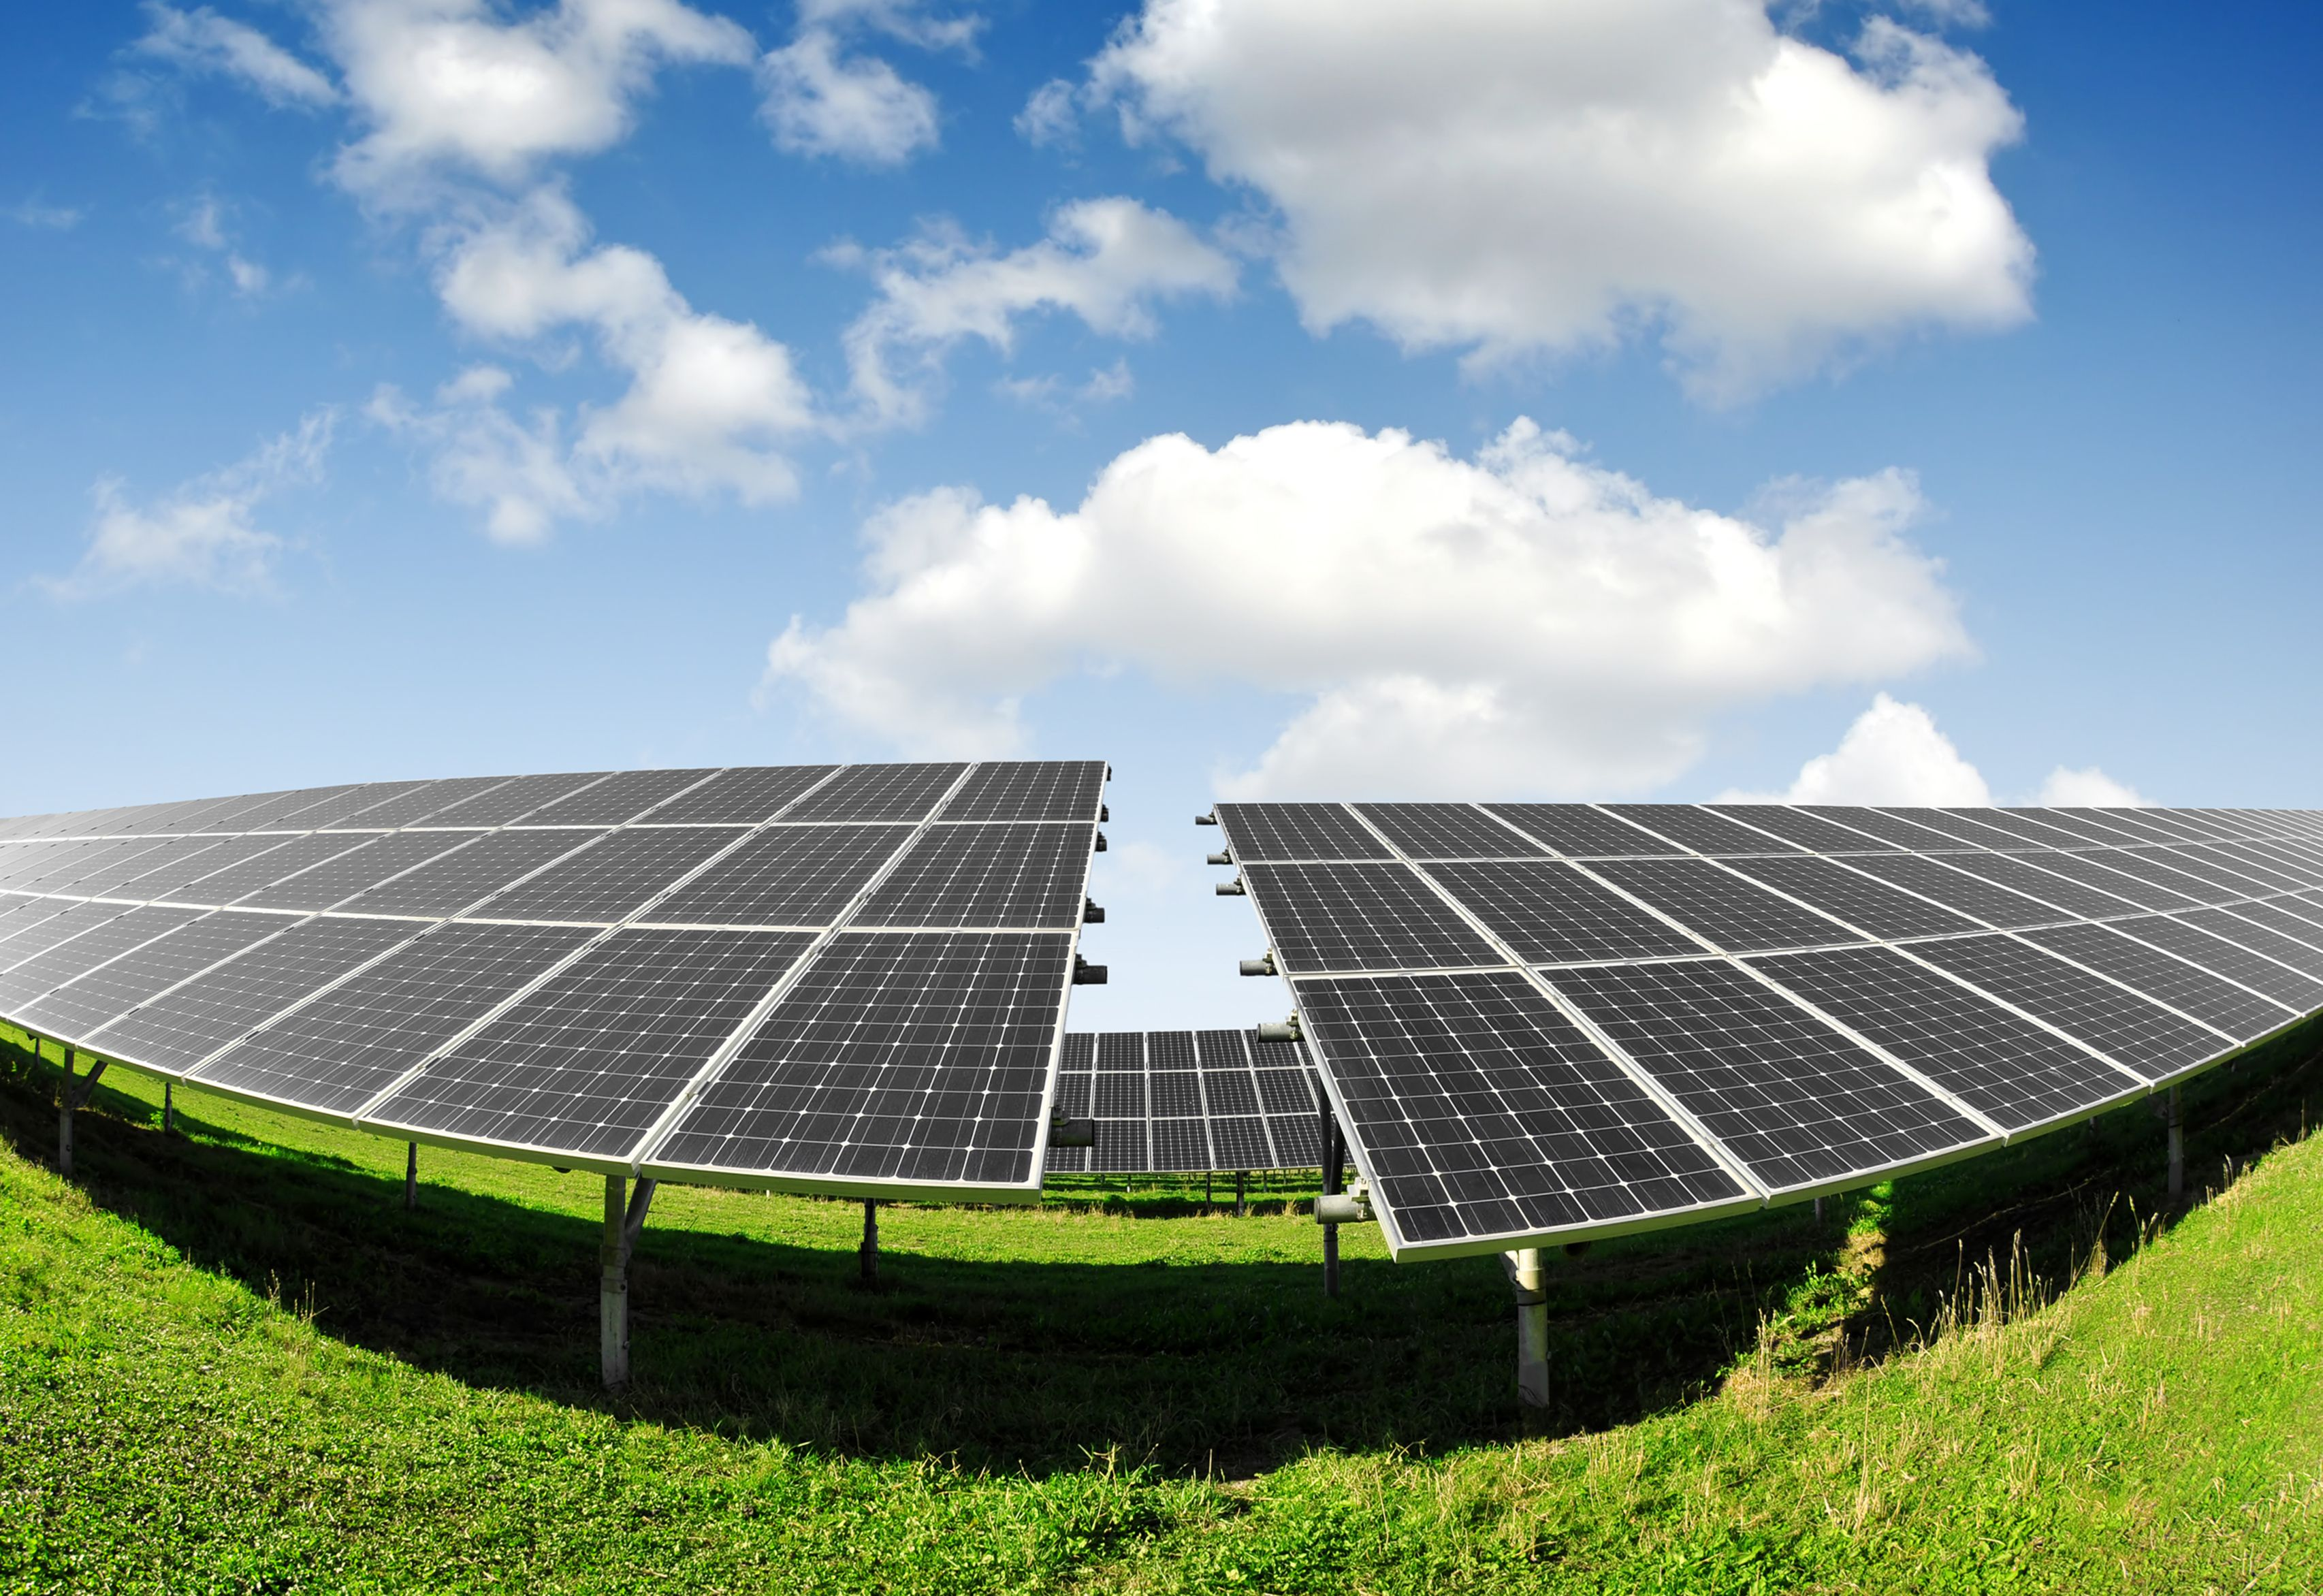 Riverside country gets big savings in small solar system